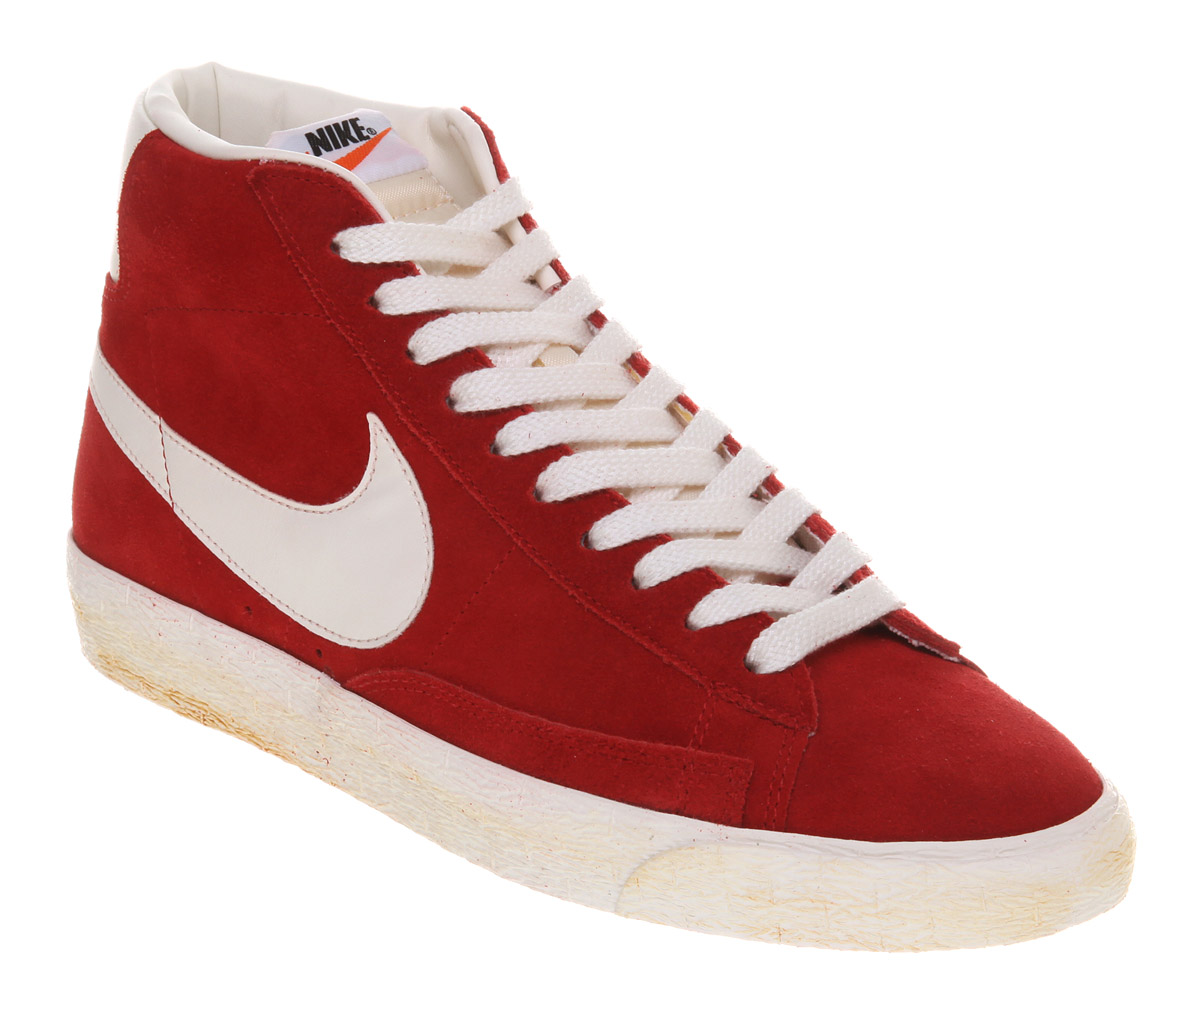 nike blazer high red suede pumps